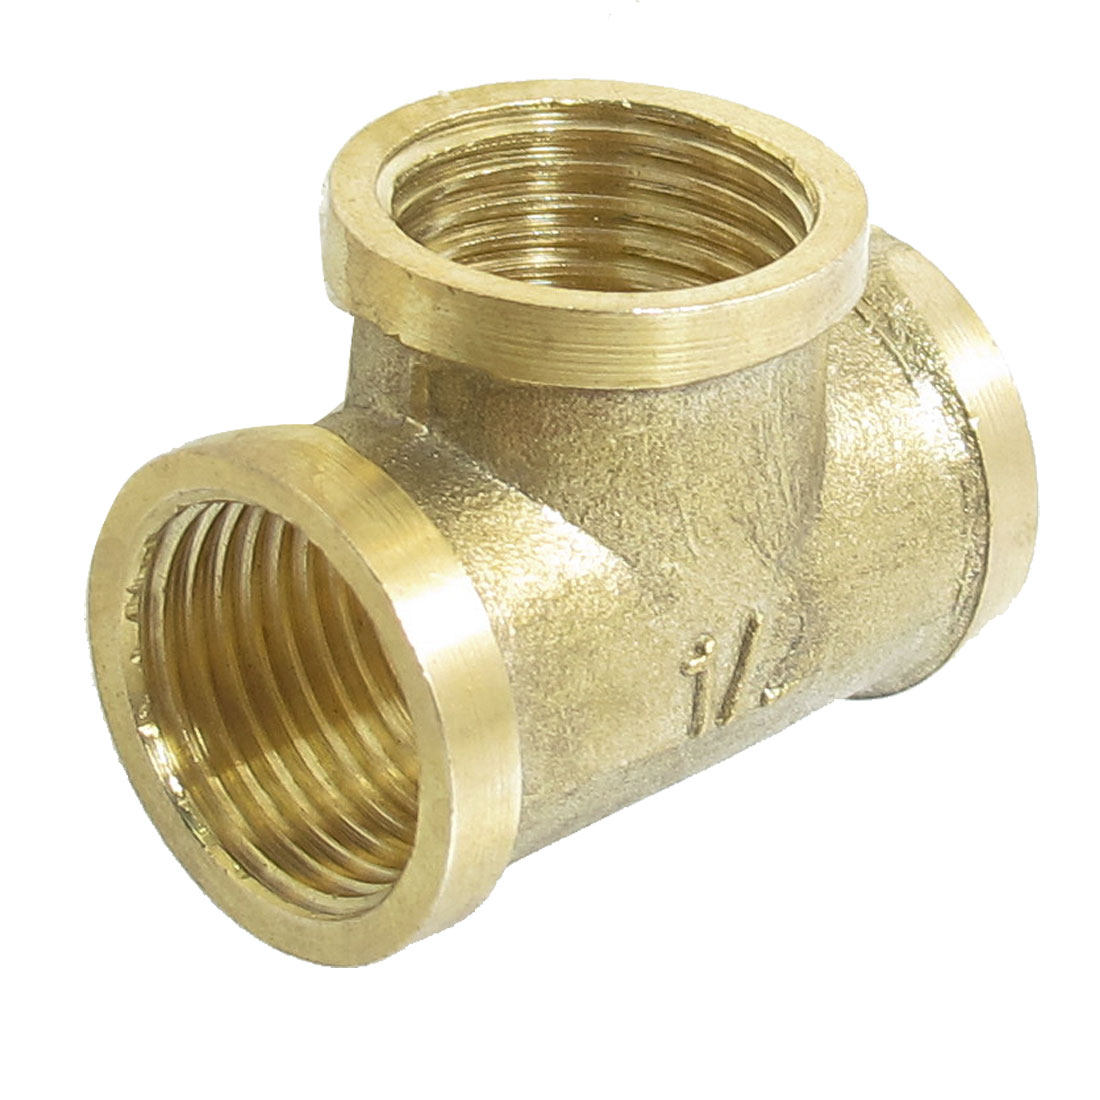 "1/2"" PT Female Thread Pneumatic Air Pipe Brass Tee Connector Coupler"